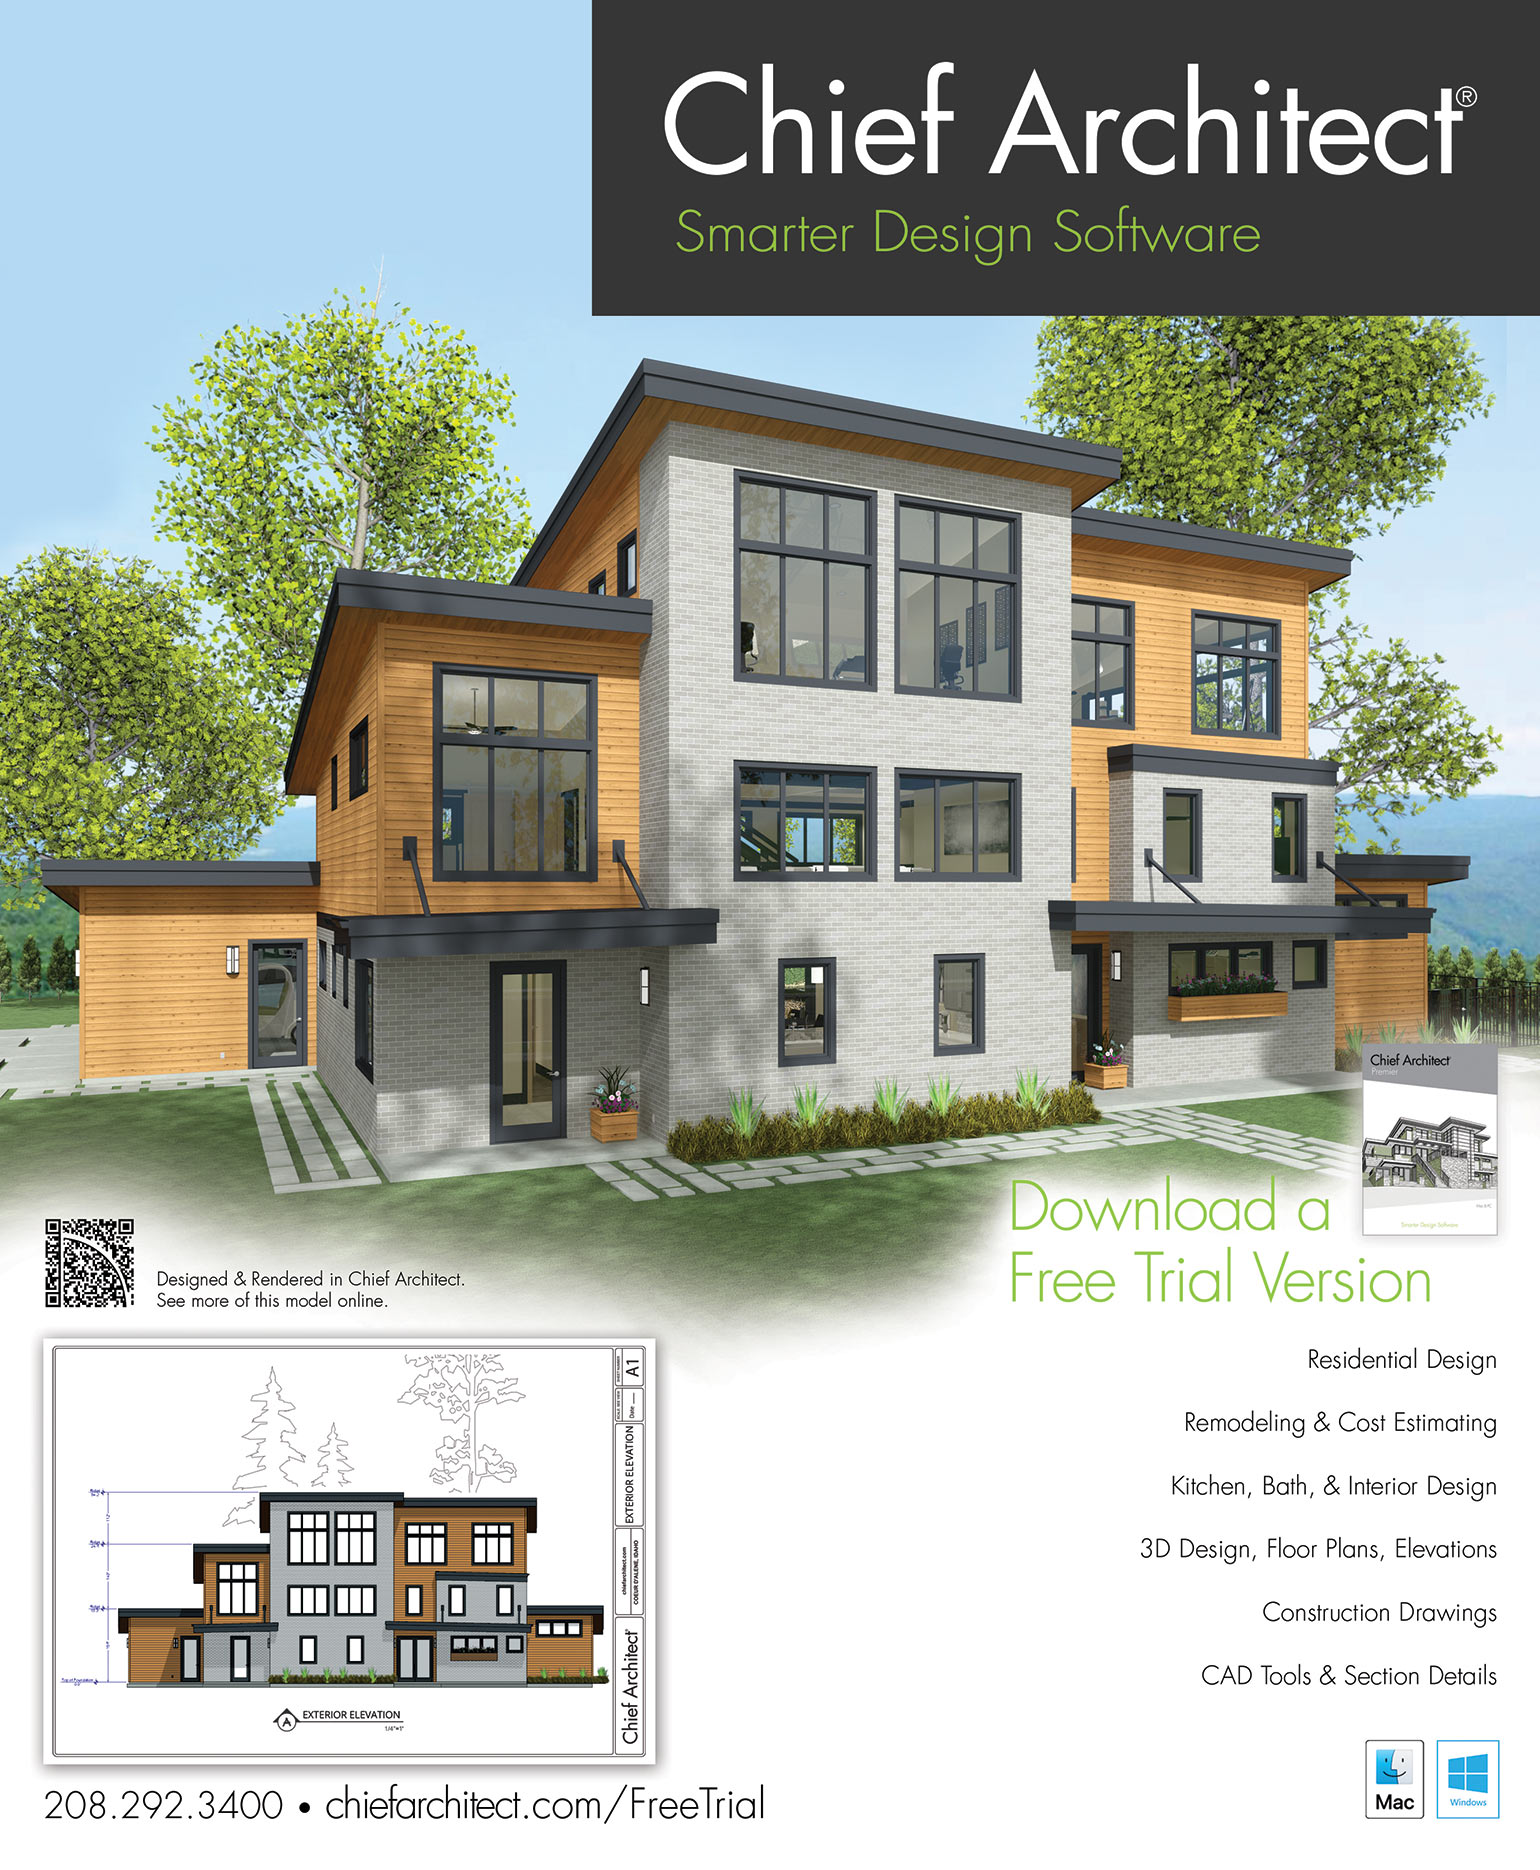 Home Design Software Free Download Full Version : design, software, download, version, Stone, Creek, Renovation, Sample, Software, Chief, Architect